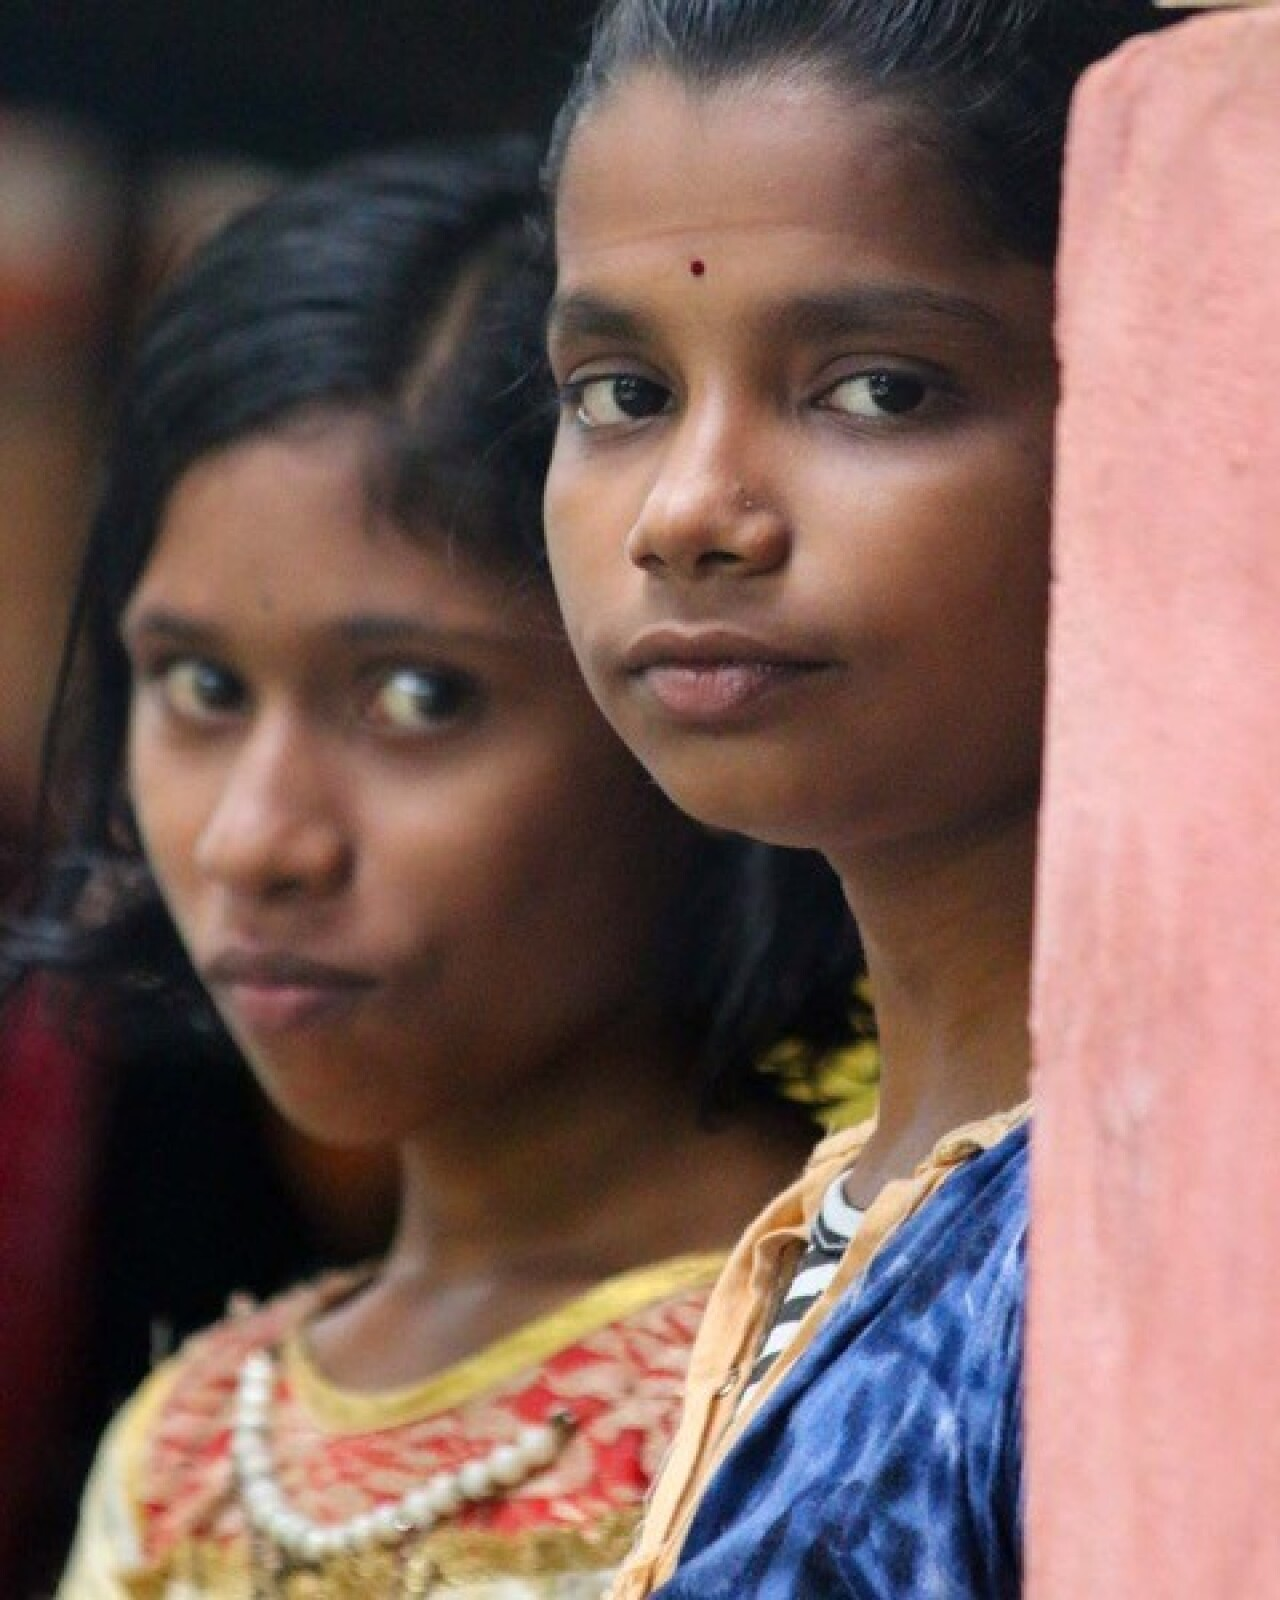 Two young girls are looking at at the photographer. The young girl in the background is wearing a colorful yellow, red, white, and gold top and the young girl in the foreground is wearing a colorful blue top.